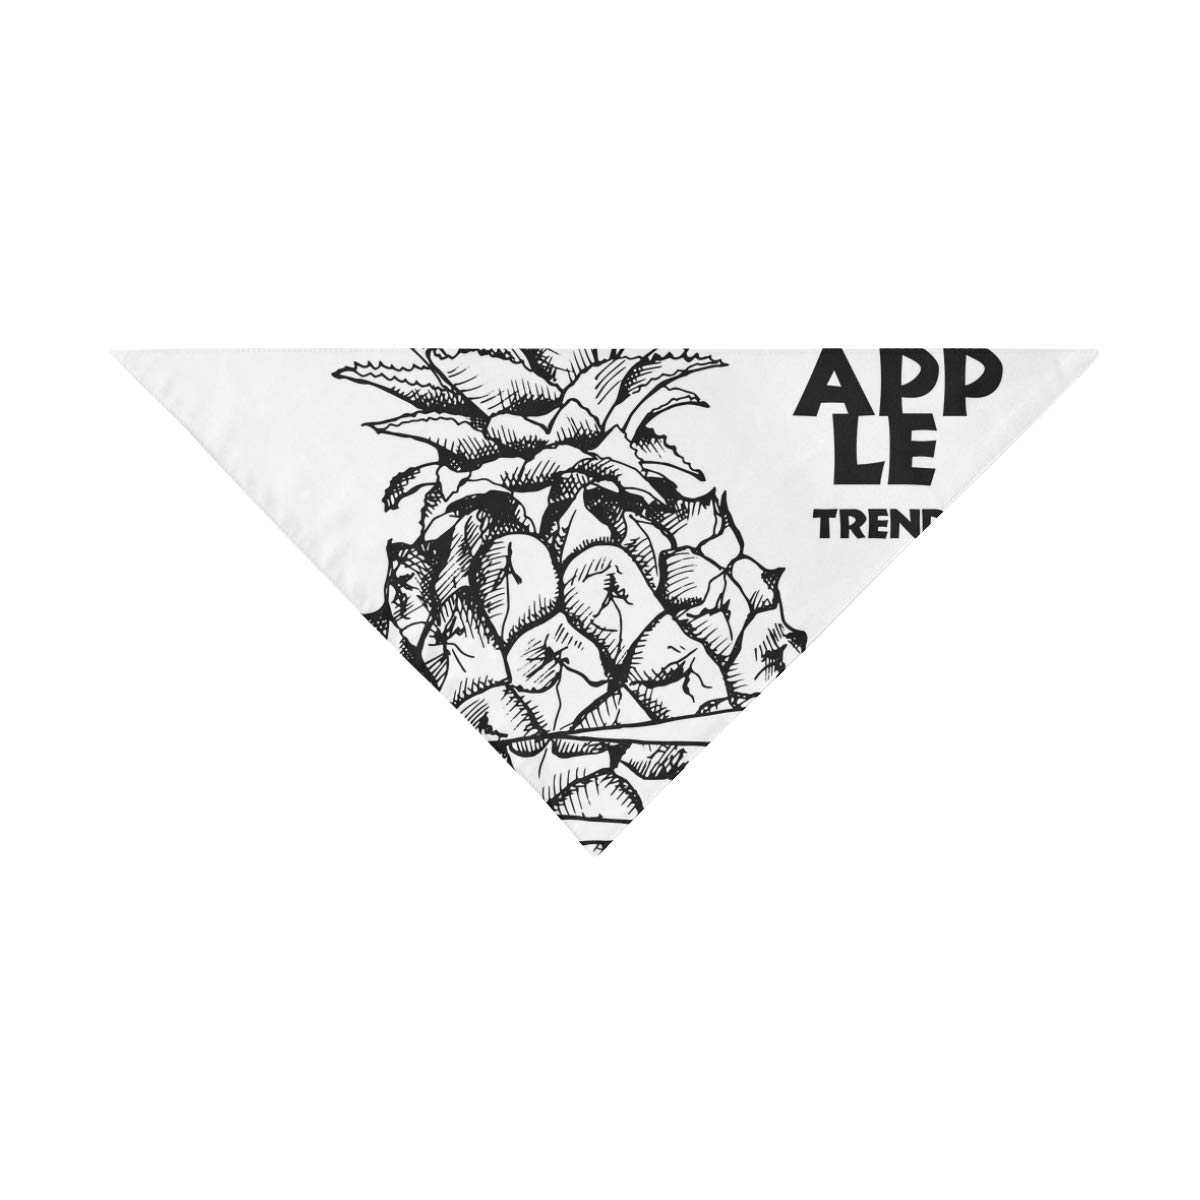 JTMOVING Dog Scarf Image Slices Pineapple Fruit Black Printing Dog Bandana Triangle Kerchief Bibs Accessories for Large Boy Girl Dogs Cats Pets Birthday Party Gift